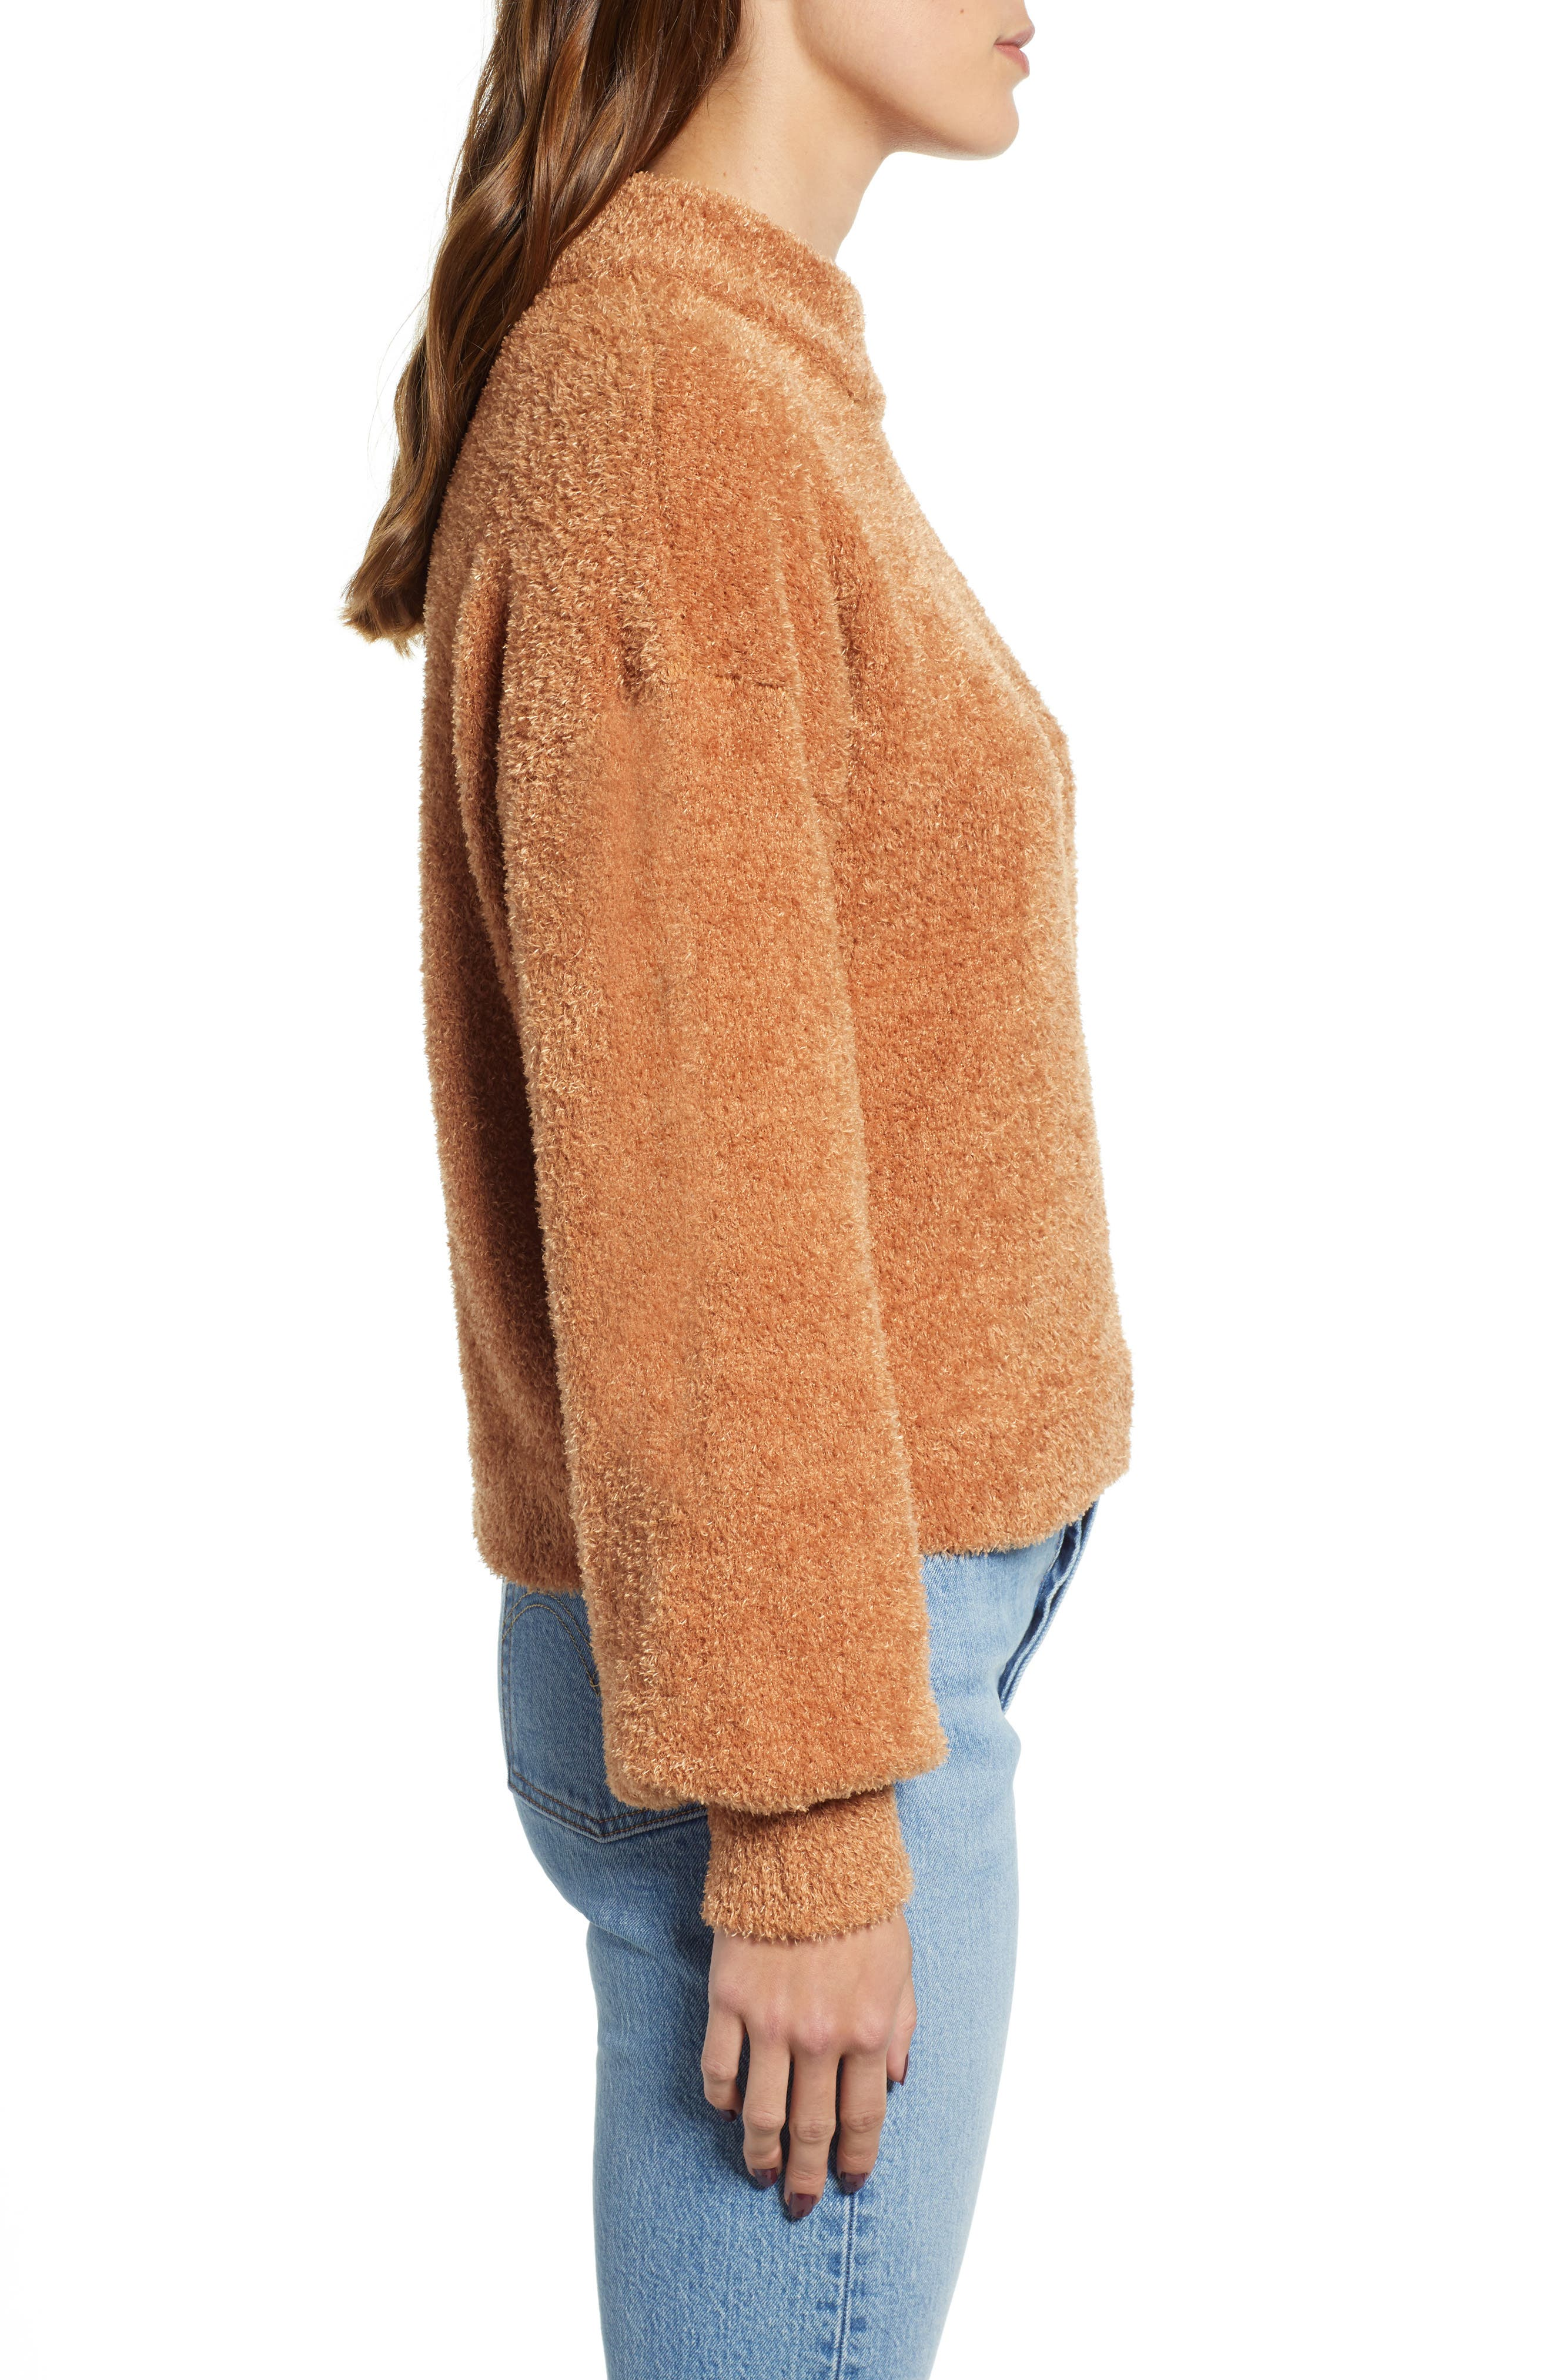 CODEXMODE,                             Cozy Chenille Sweater,                             Alternate thumbnail 3, color,                             250